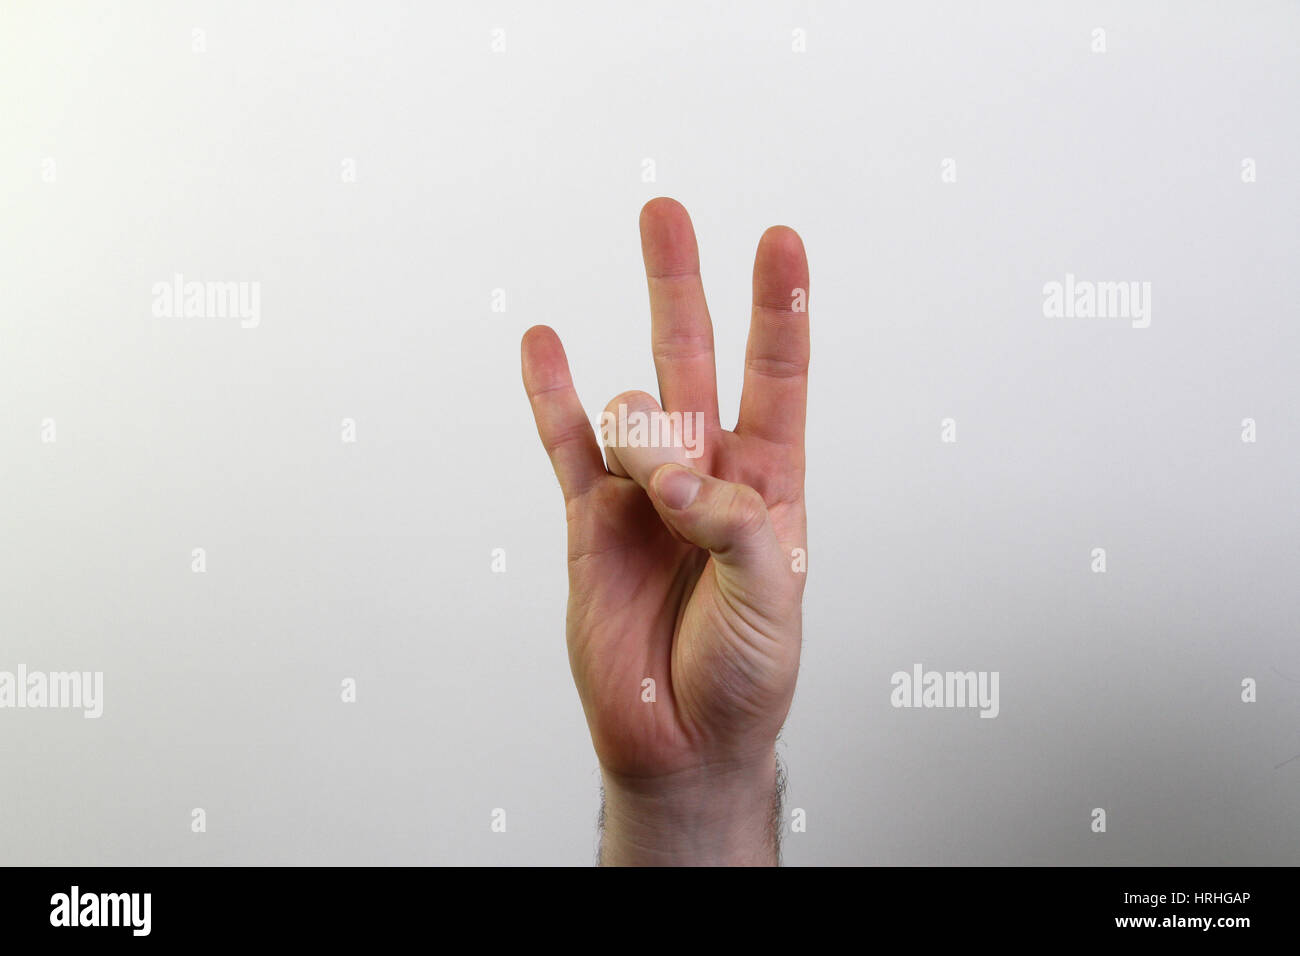 Hand signing number seven - Stock Image